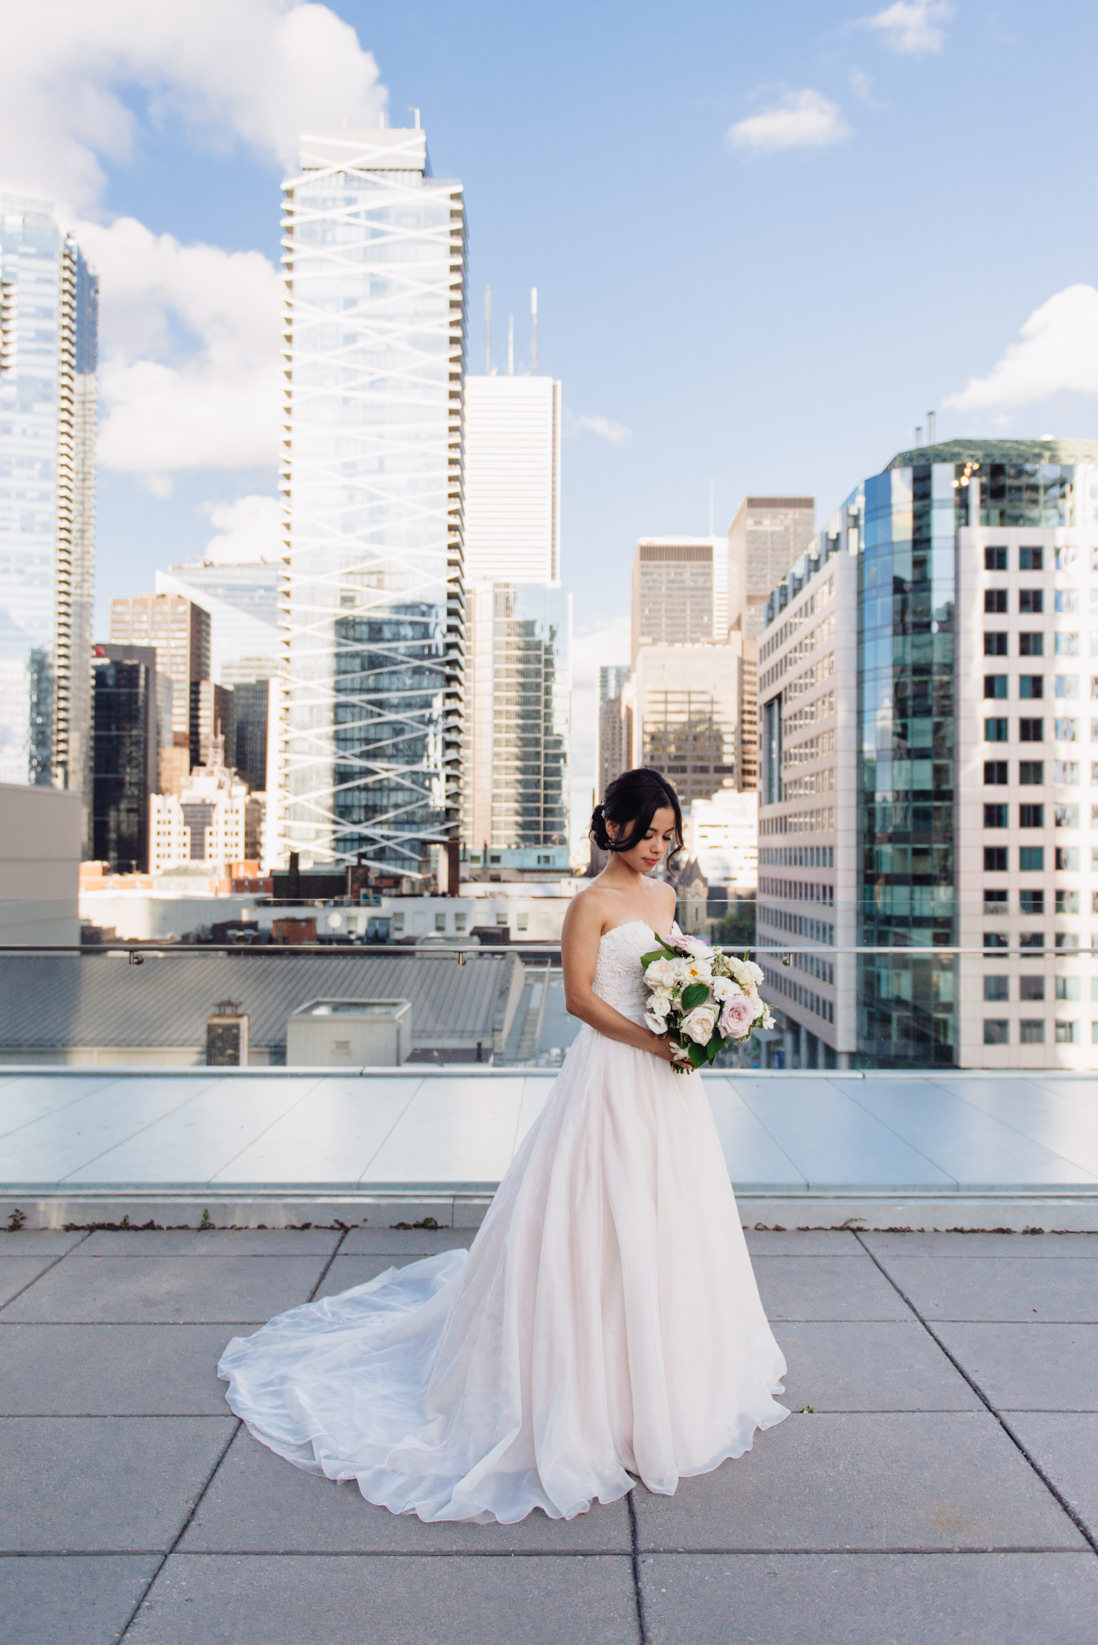 essense of australia dress bride with cream and blush bouquet_Malaparte_Wedding_Toronto_Wedding_Photographer | EightyFifth Street Photography